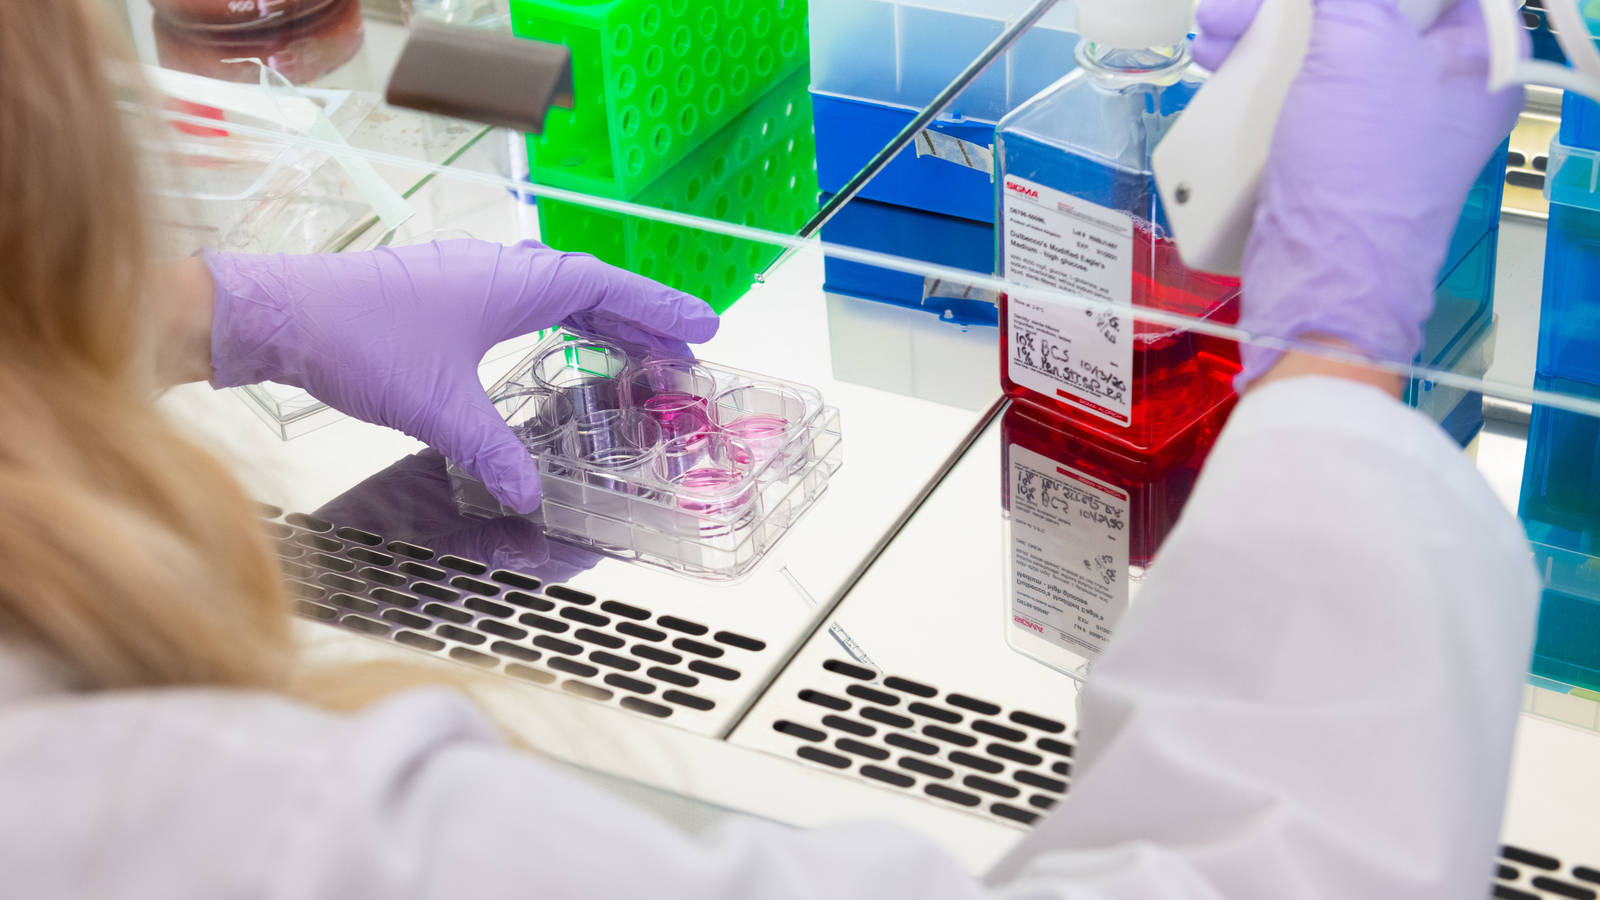 Genetics research in lab